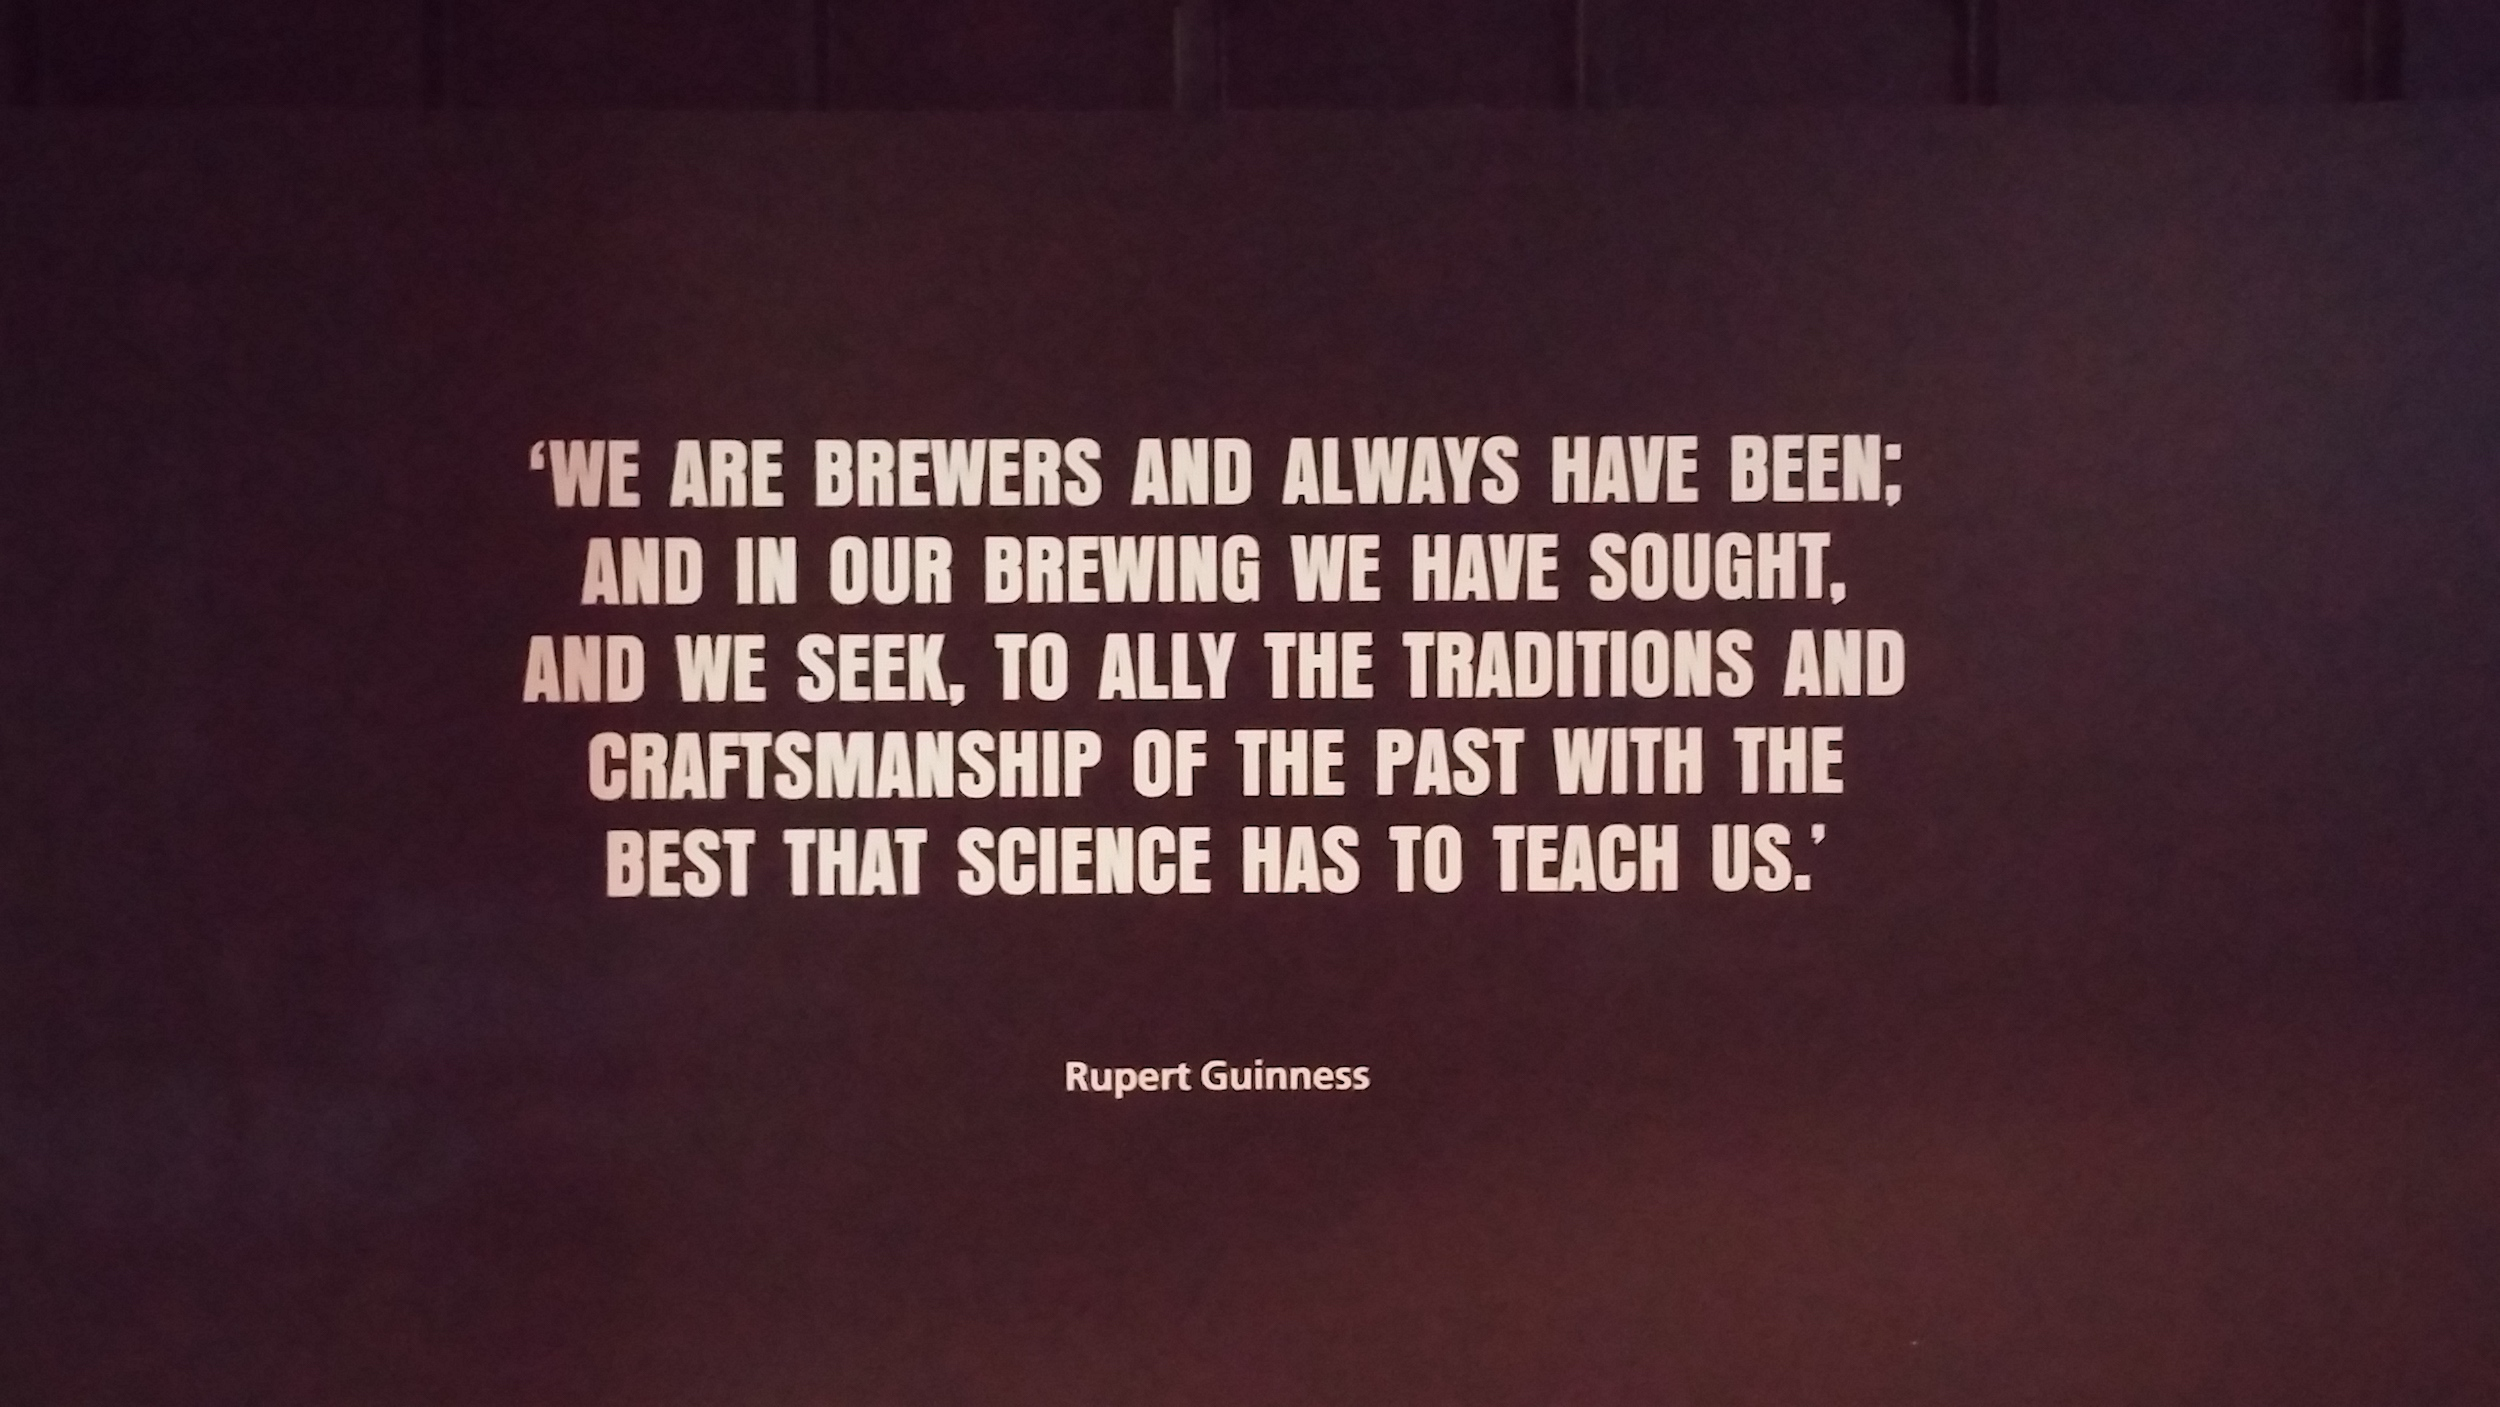 Quote from Rupert Guinness - We are brewers and always have been; and in our brewing we have sought, and we seek, to ally the traditions and craftsmanship of the past with the best that science has to teach us.